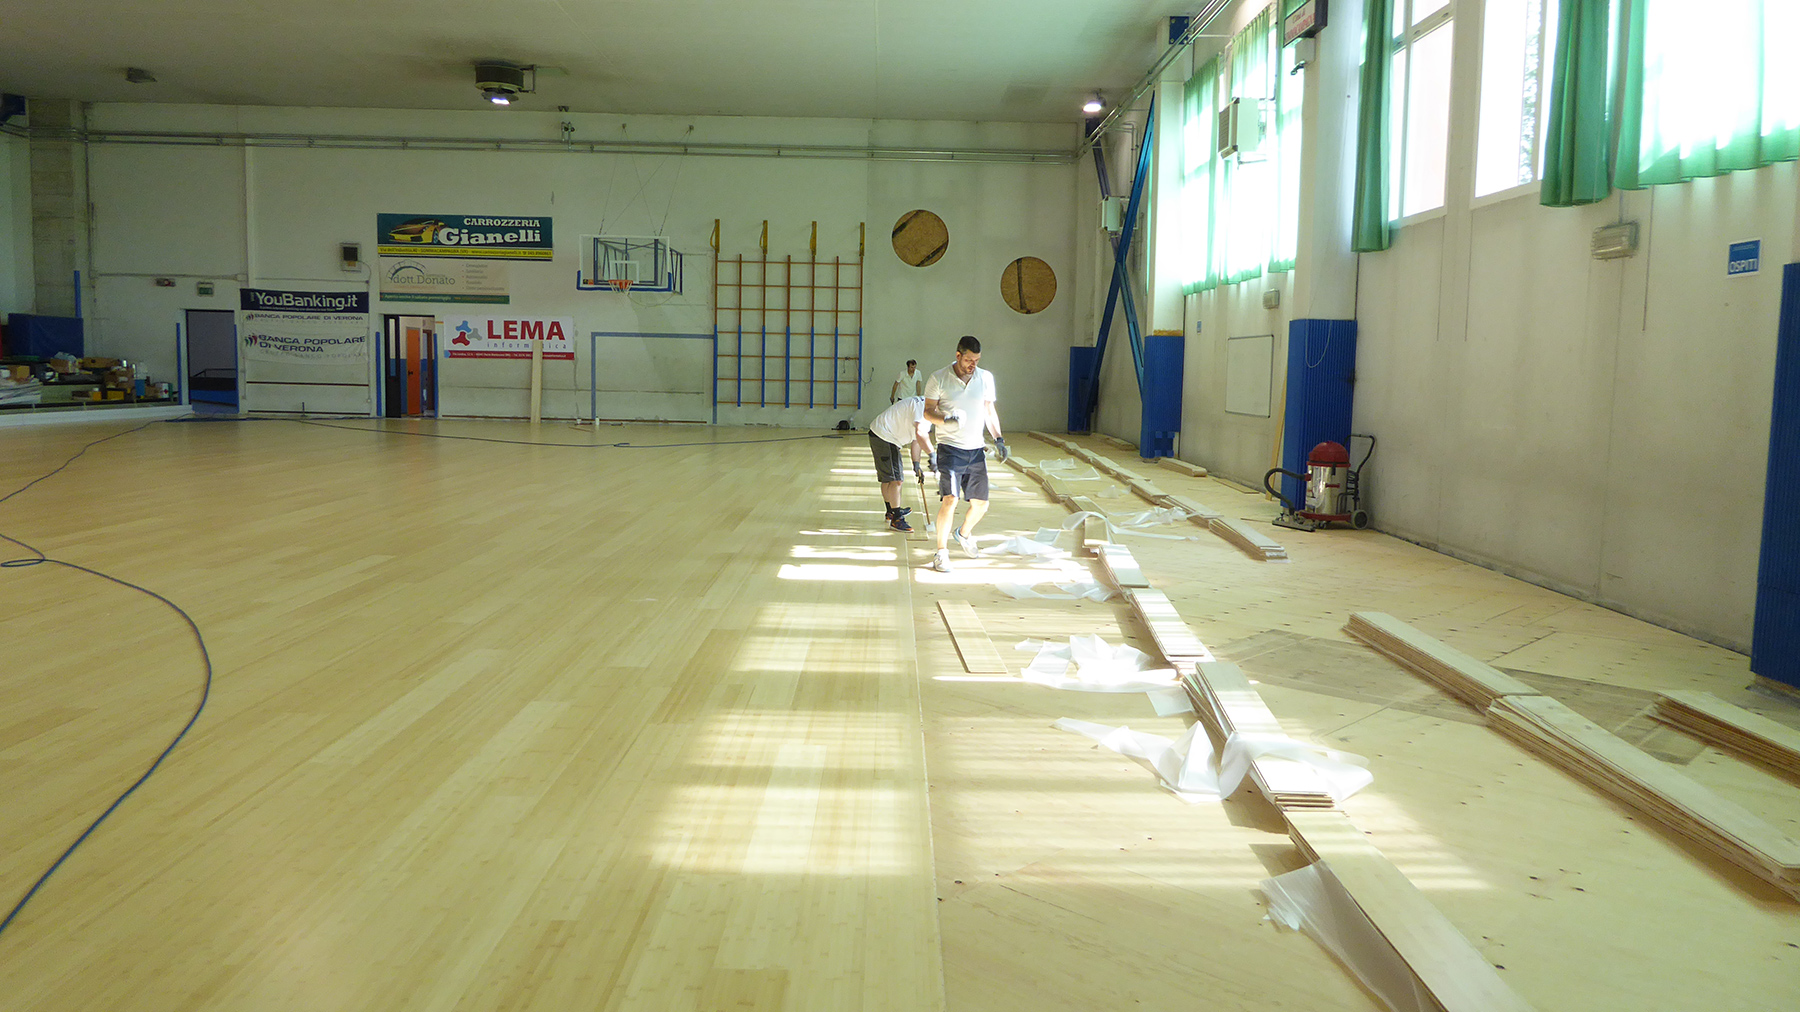 The laying of the new flooring